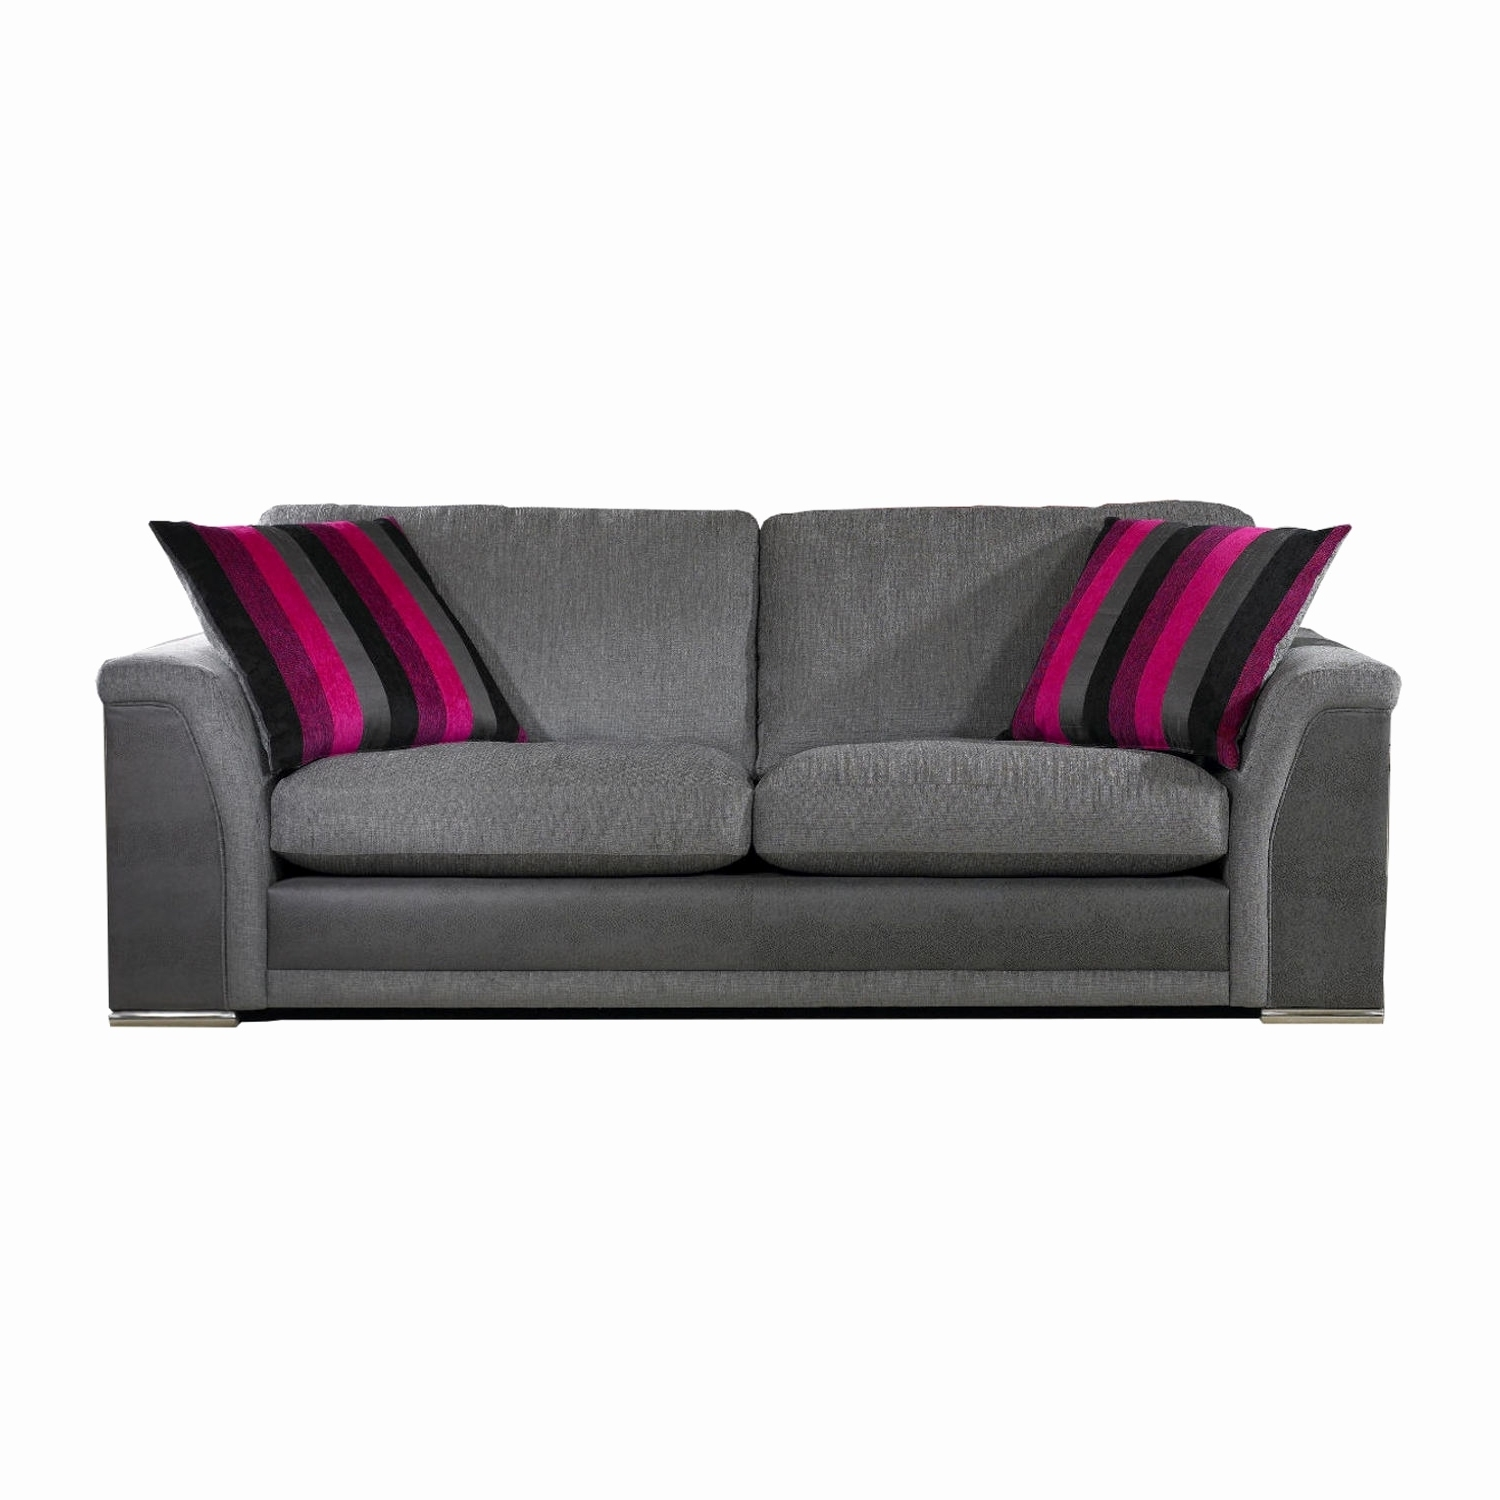 Latest Fresh High Point Sofa 2018 – Couches And Sofas Ideas Throughout High Point Nc Sectional Sofas (View 11 of 20)